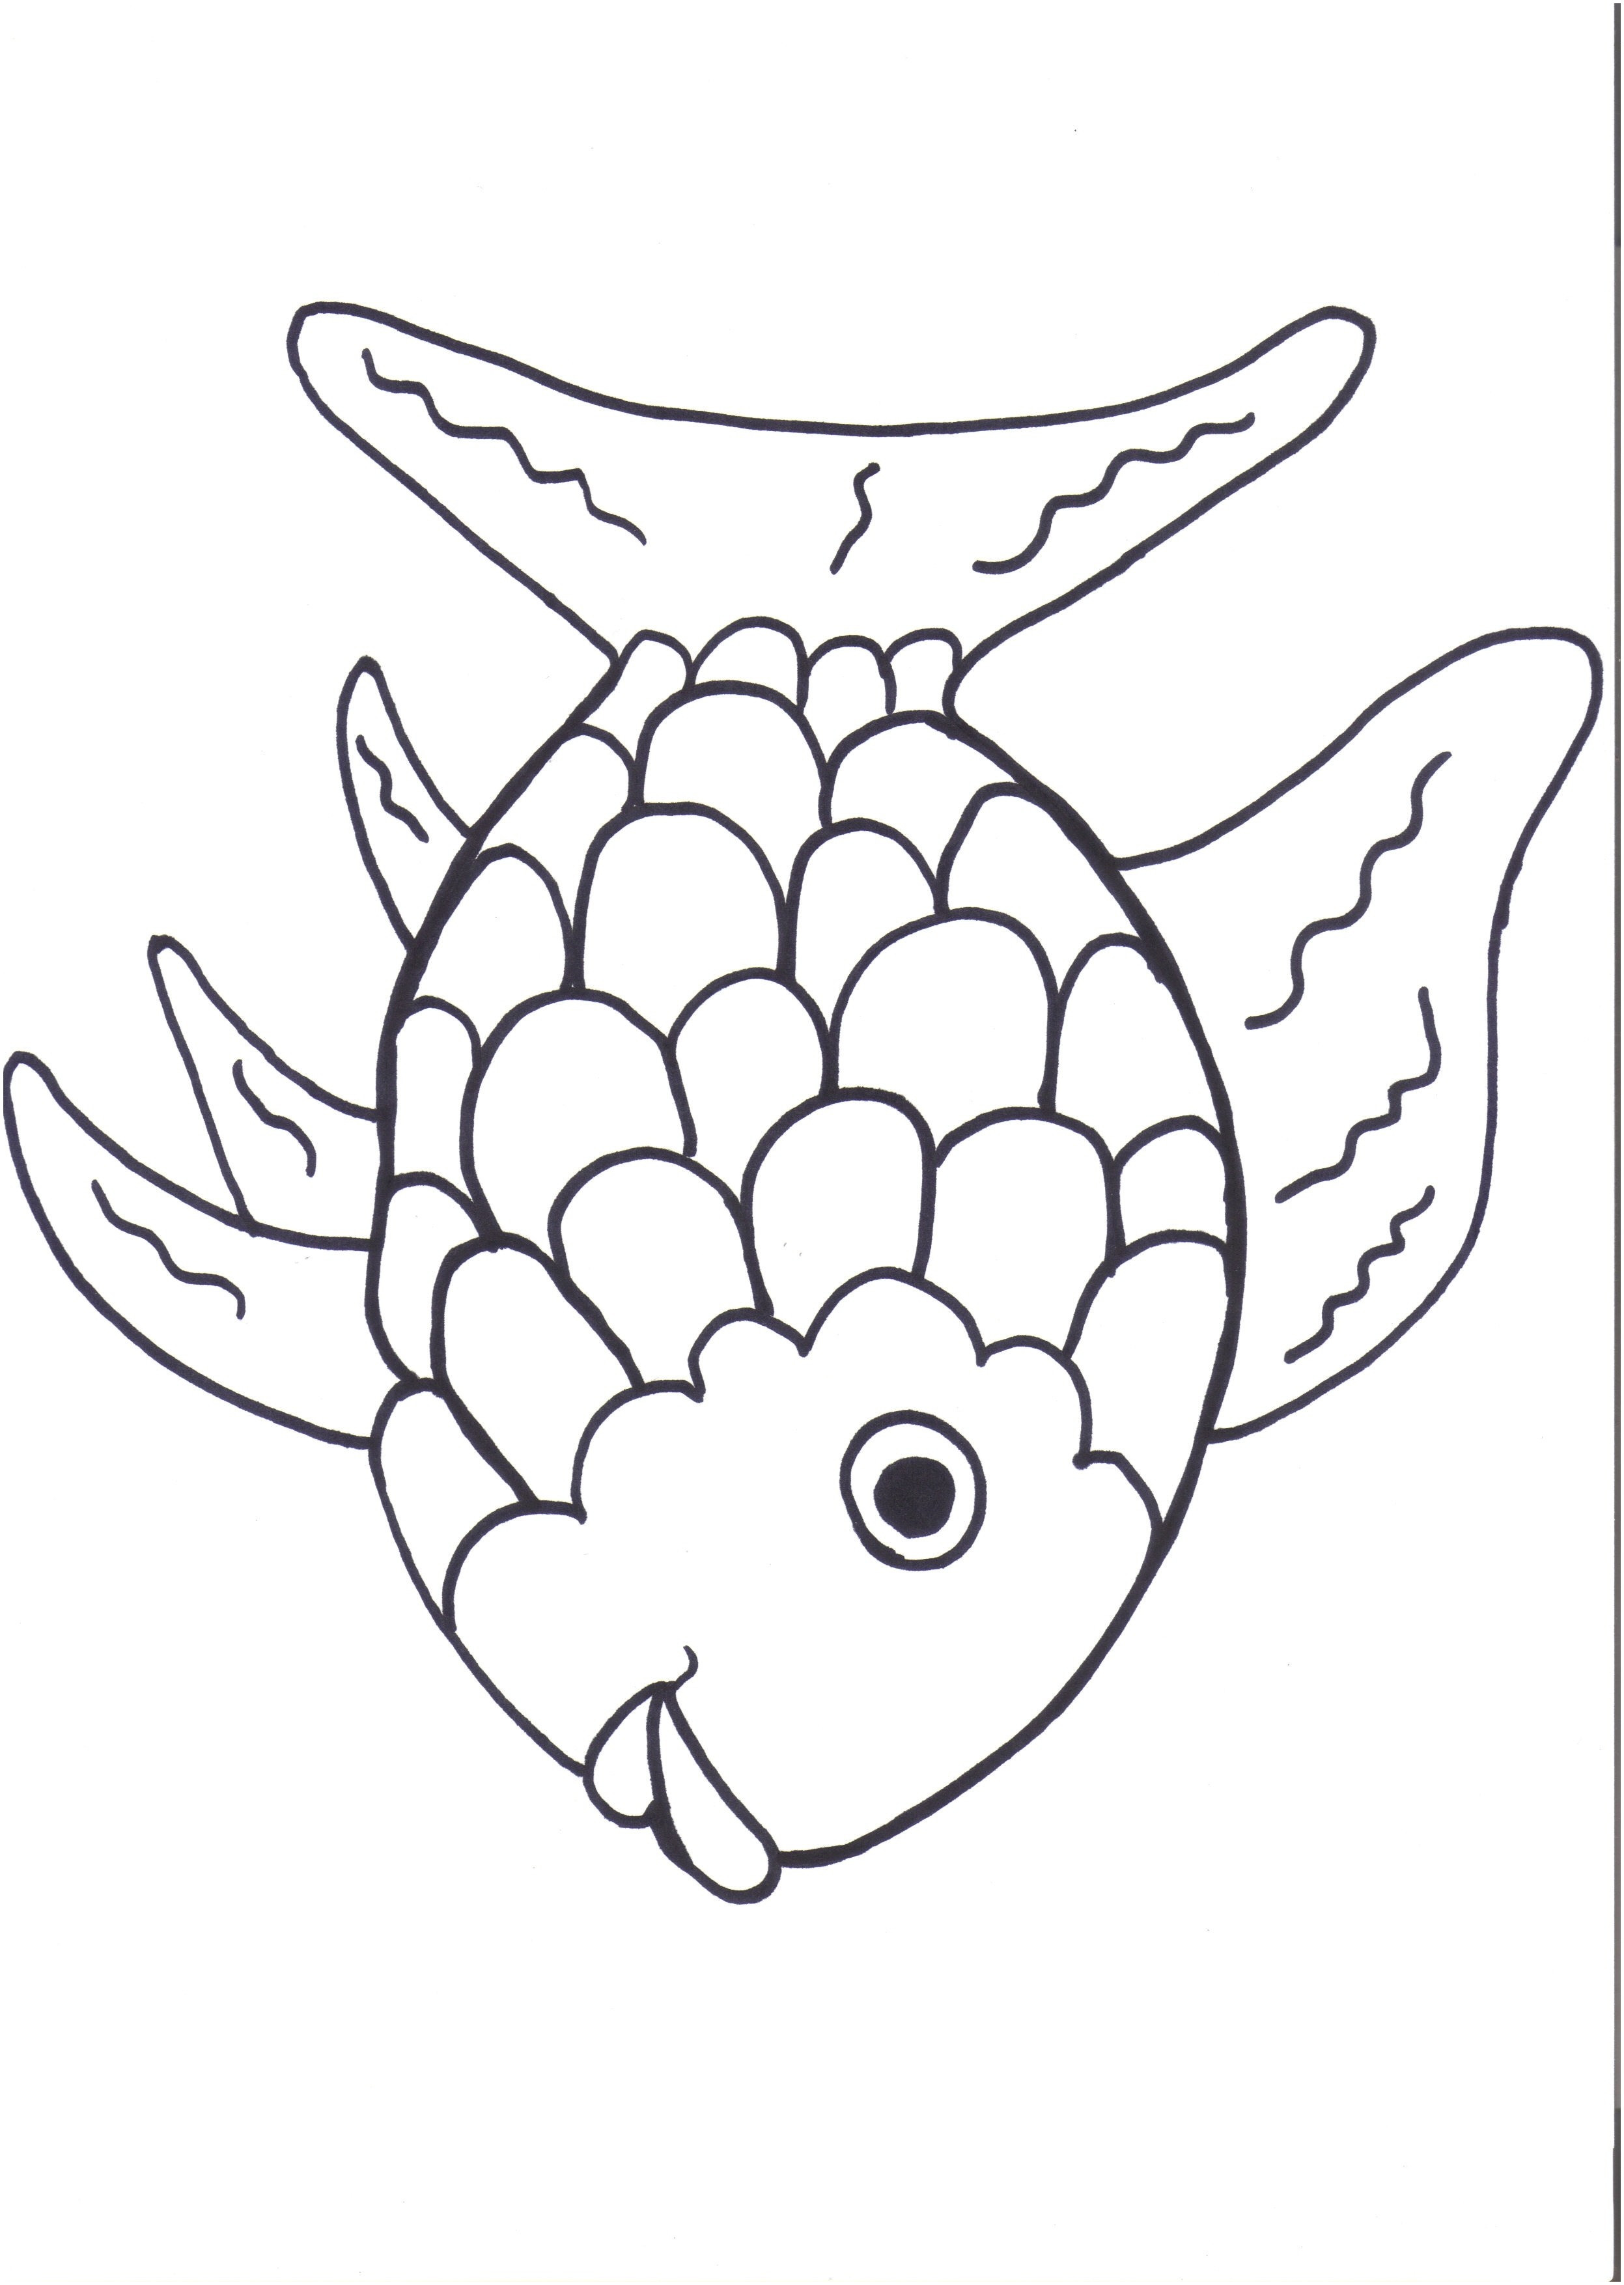 Fish In Vase Of Best Of Vases Flower Vase Coloring Page Pages Flowers In A top I 0d Intended for Care Bears Coloring Pages New Rainbow Fish Printable Coloring Pages Free Coloring Pages Download